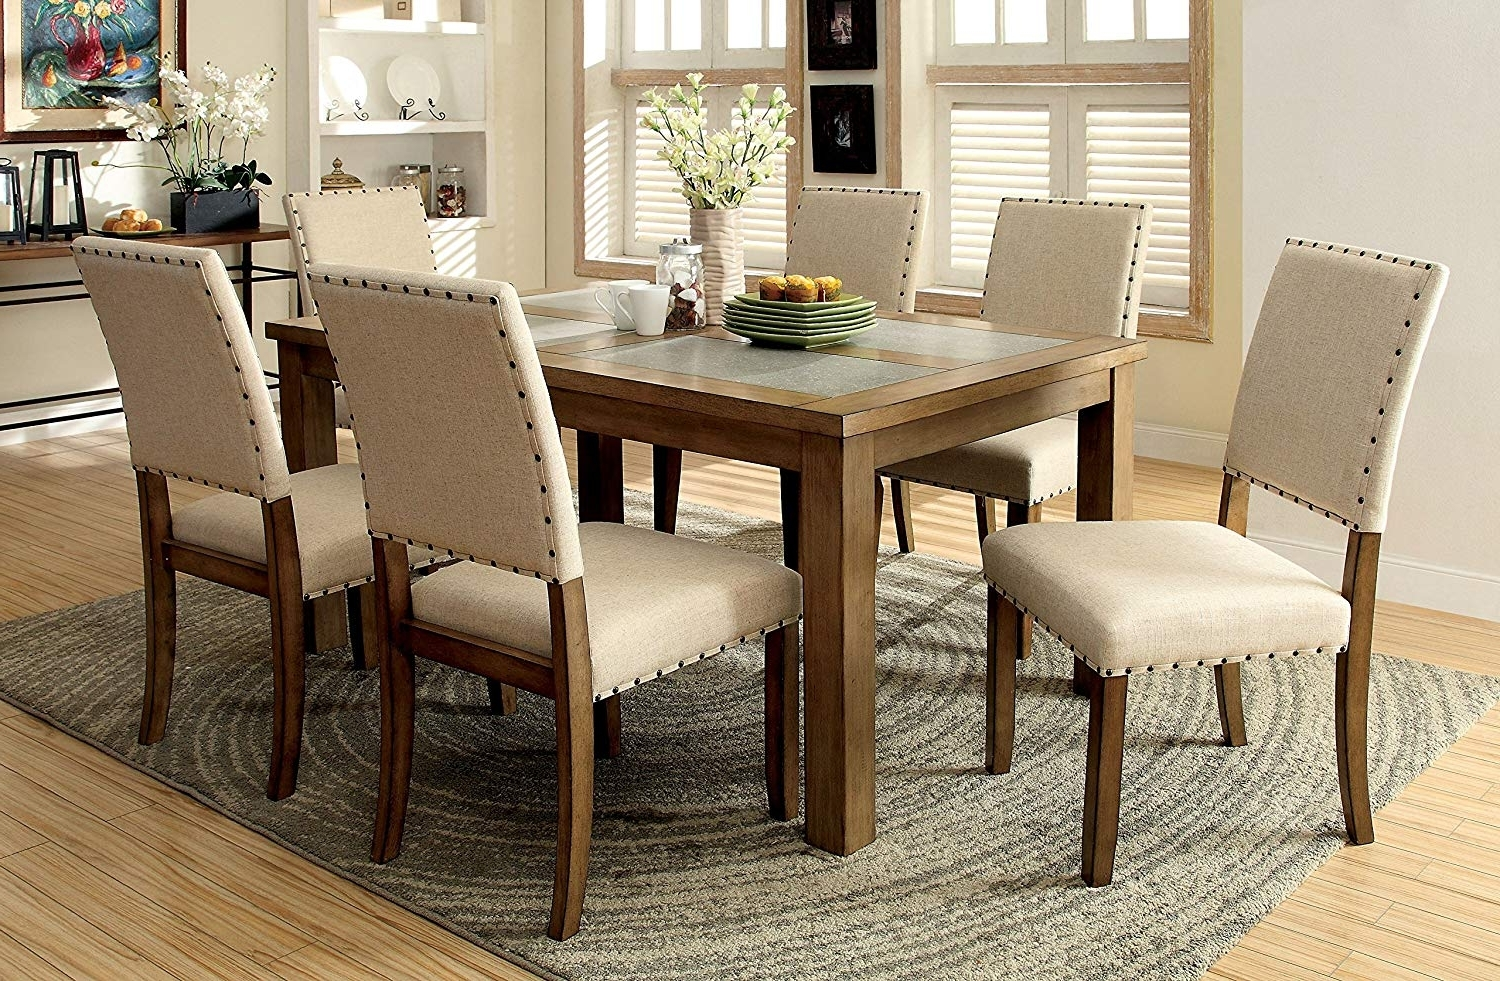 Widely Used Dining Tables And Six Chairs With Regard To Amazon – Furniture Of America Lucena 7 Piece Transitional Dining (View 24 of 25)